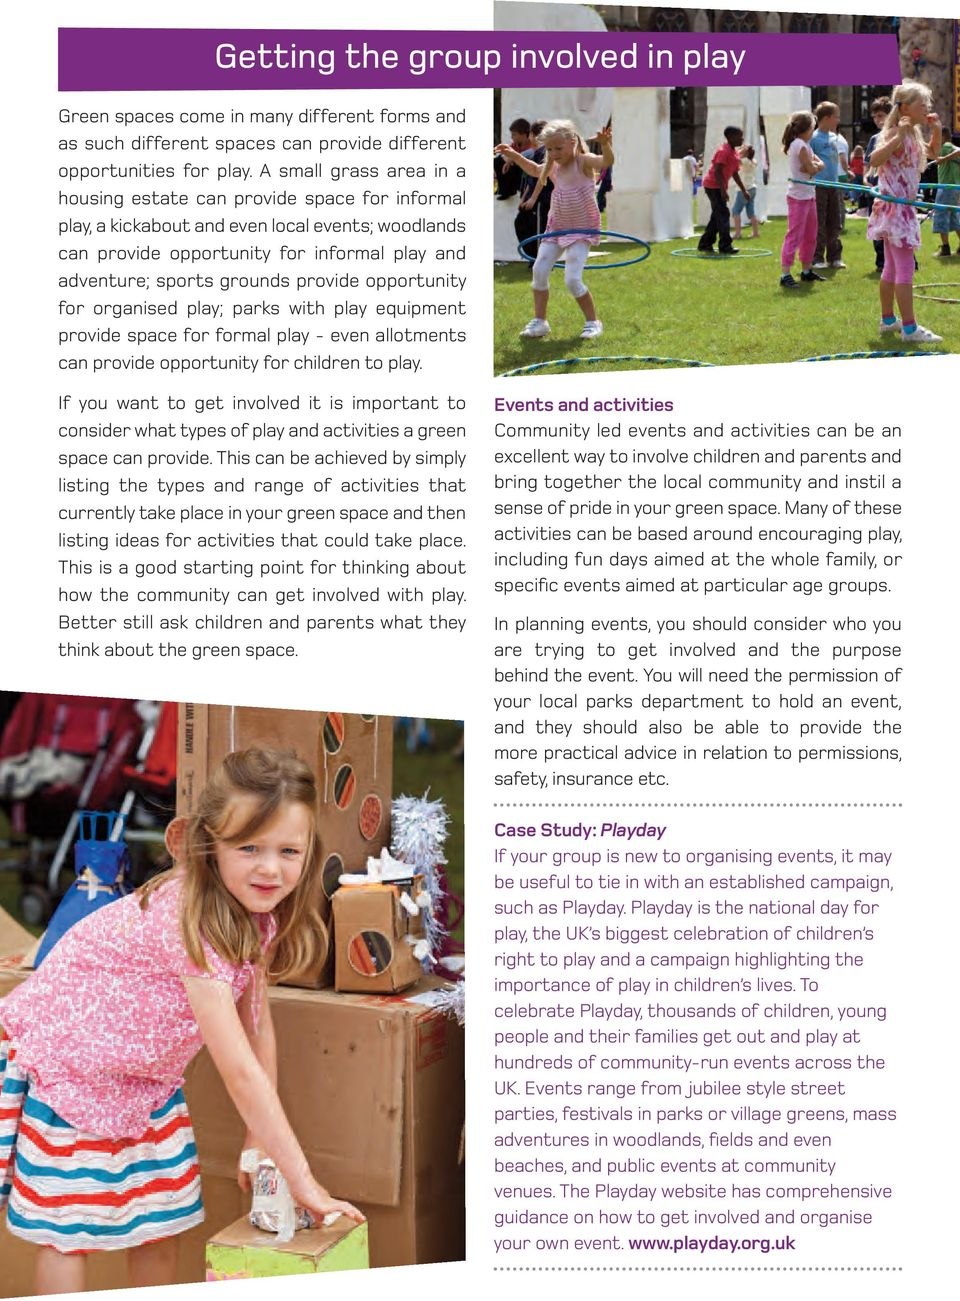 provide opportunity for organised play; parks with play equipment provide space for formal play - even allotments can provide opportunity for children to play.